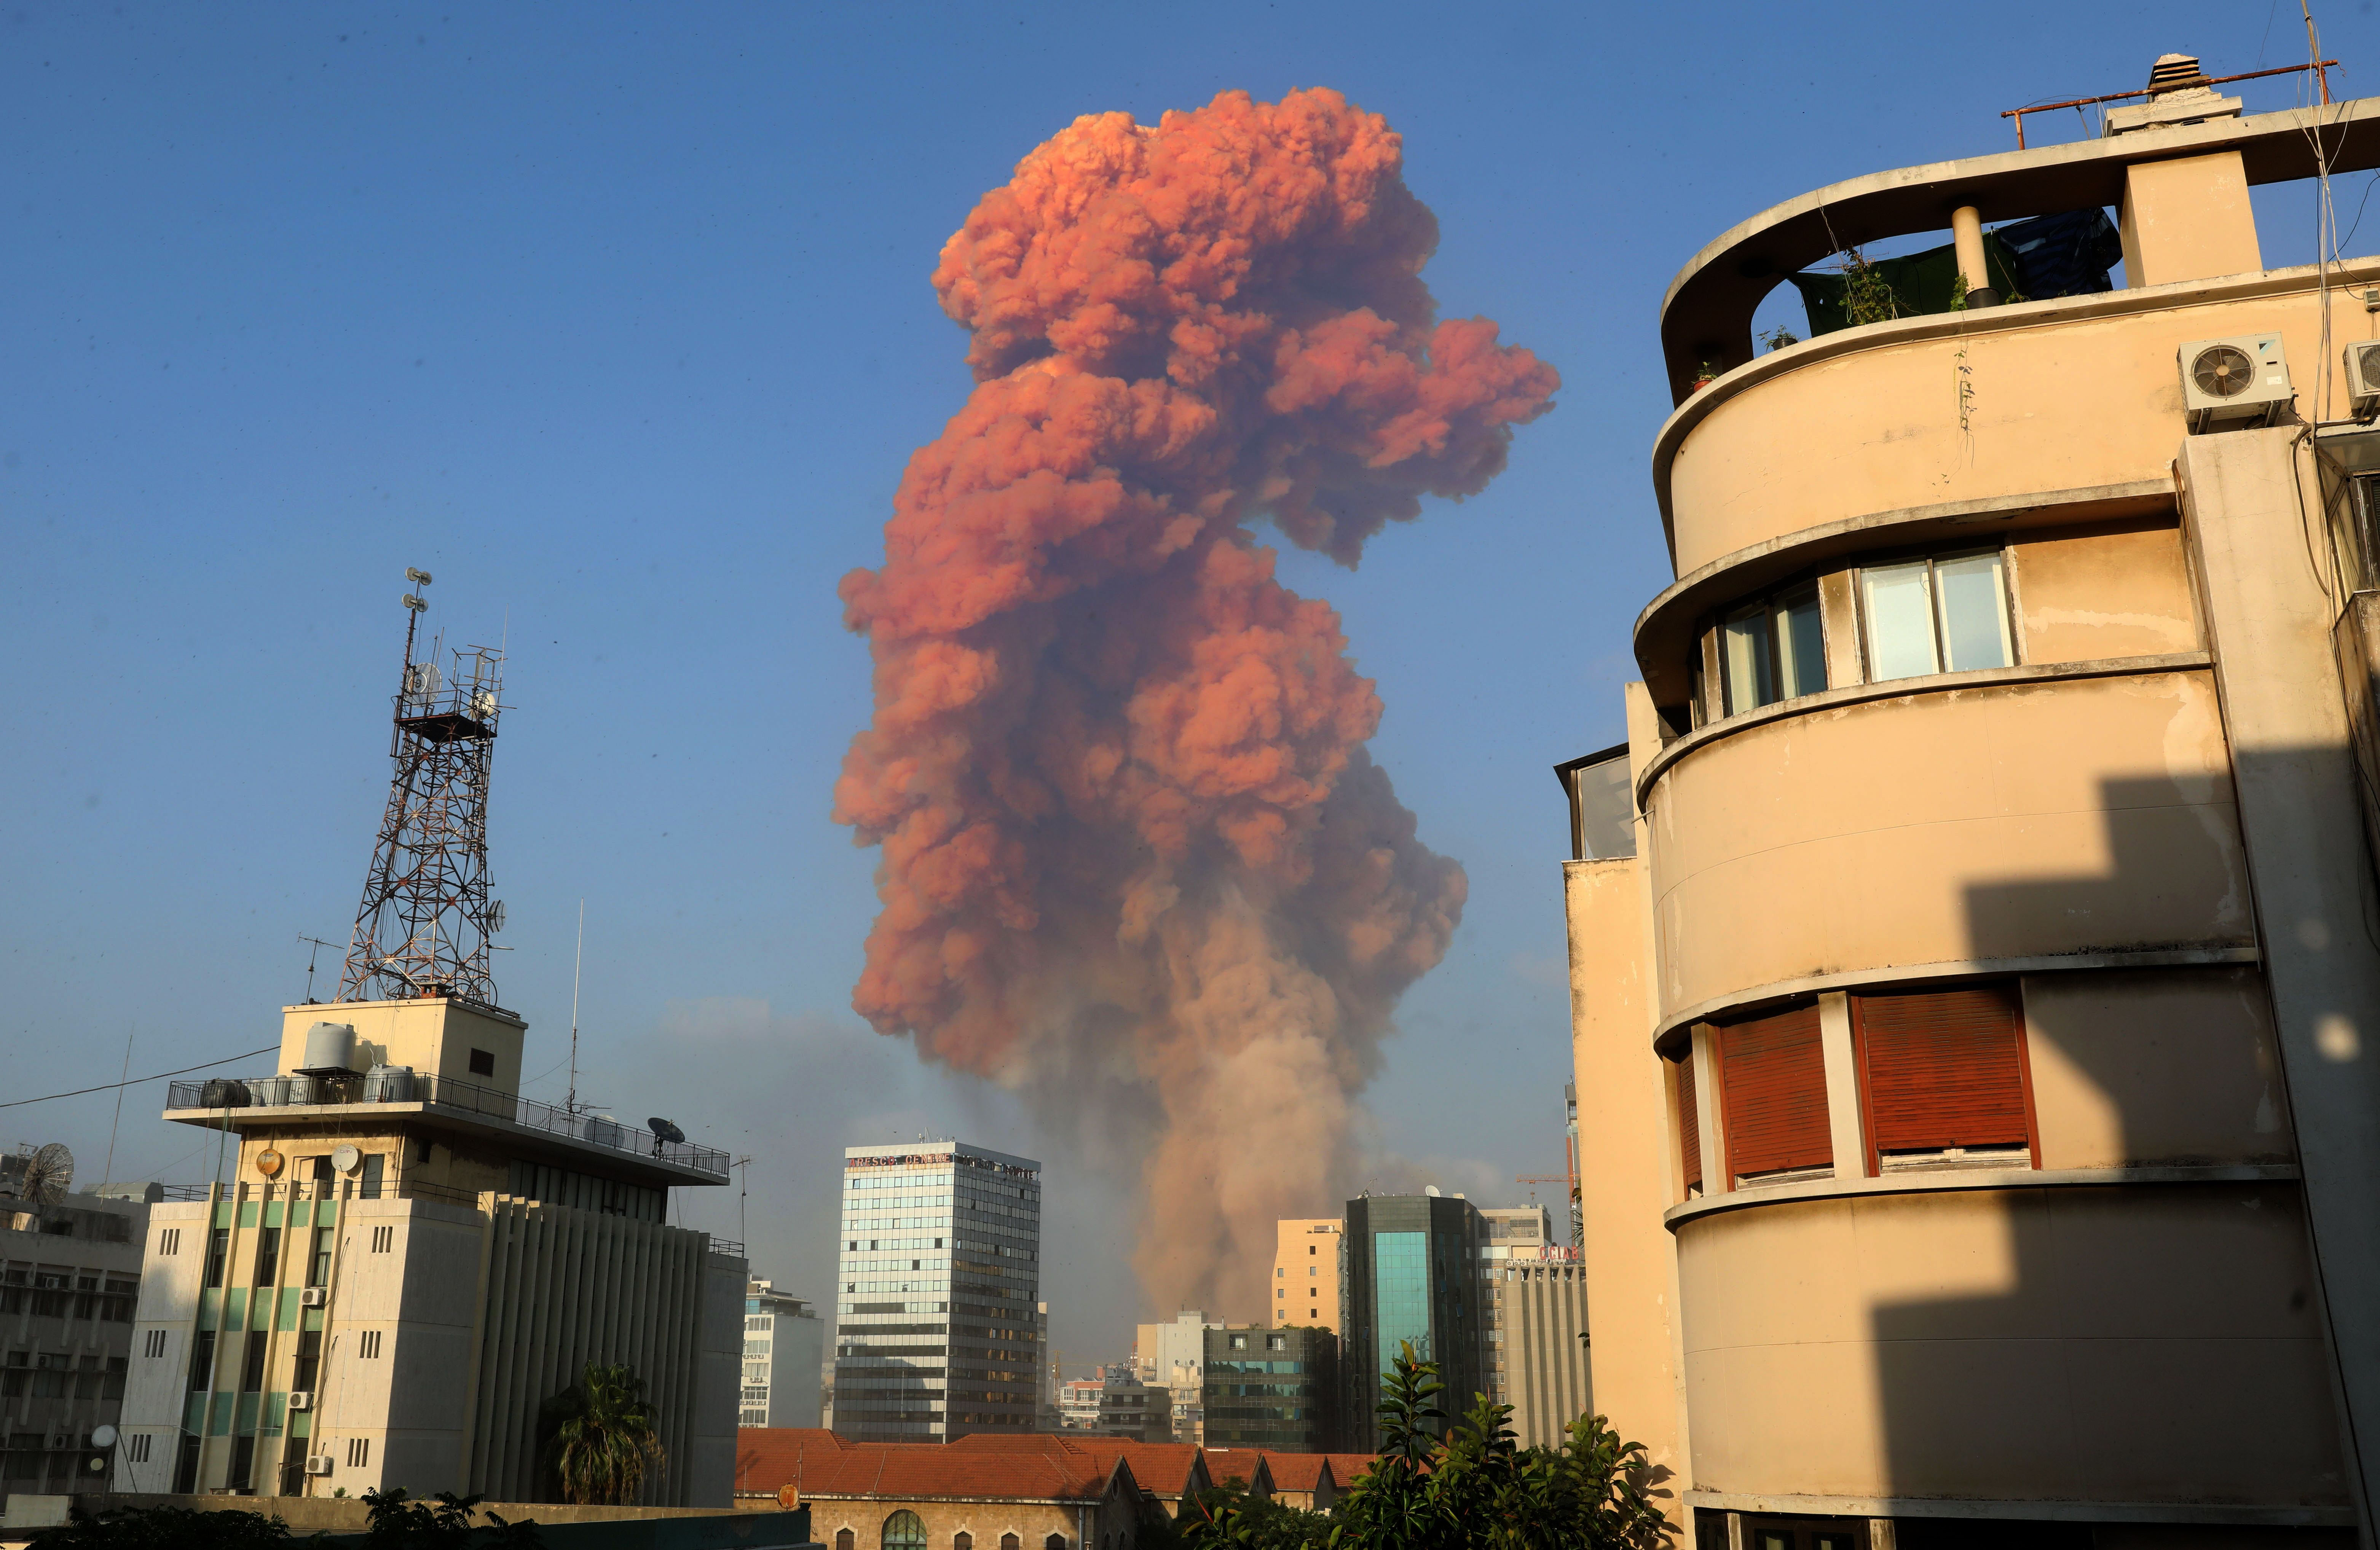 Red smoke rises after an explosion in Beirut, Lebanon, on August 4.